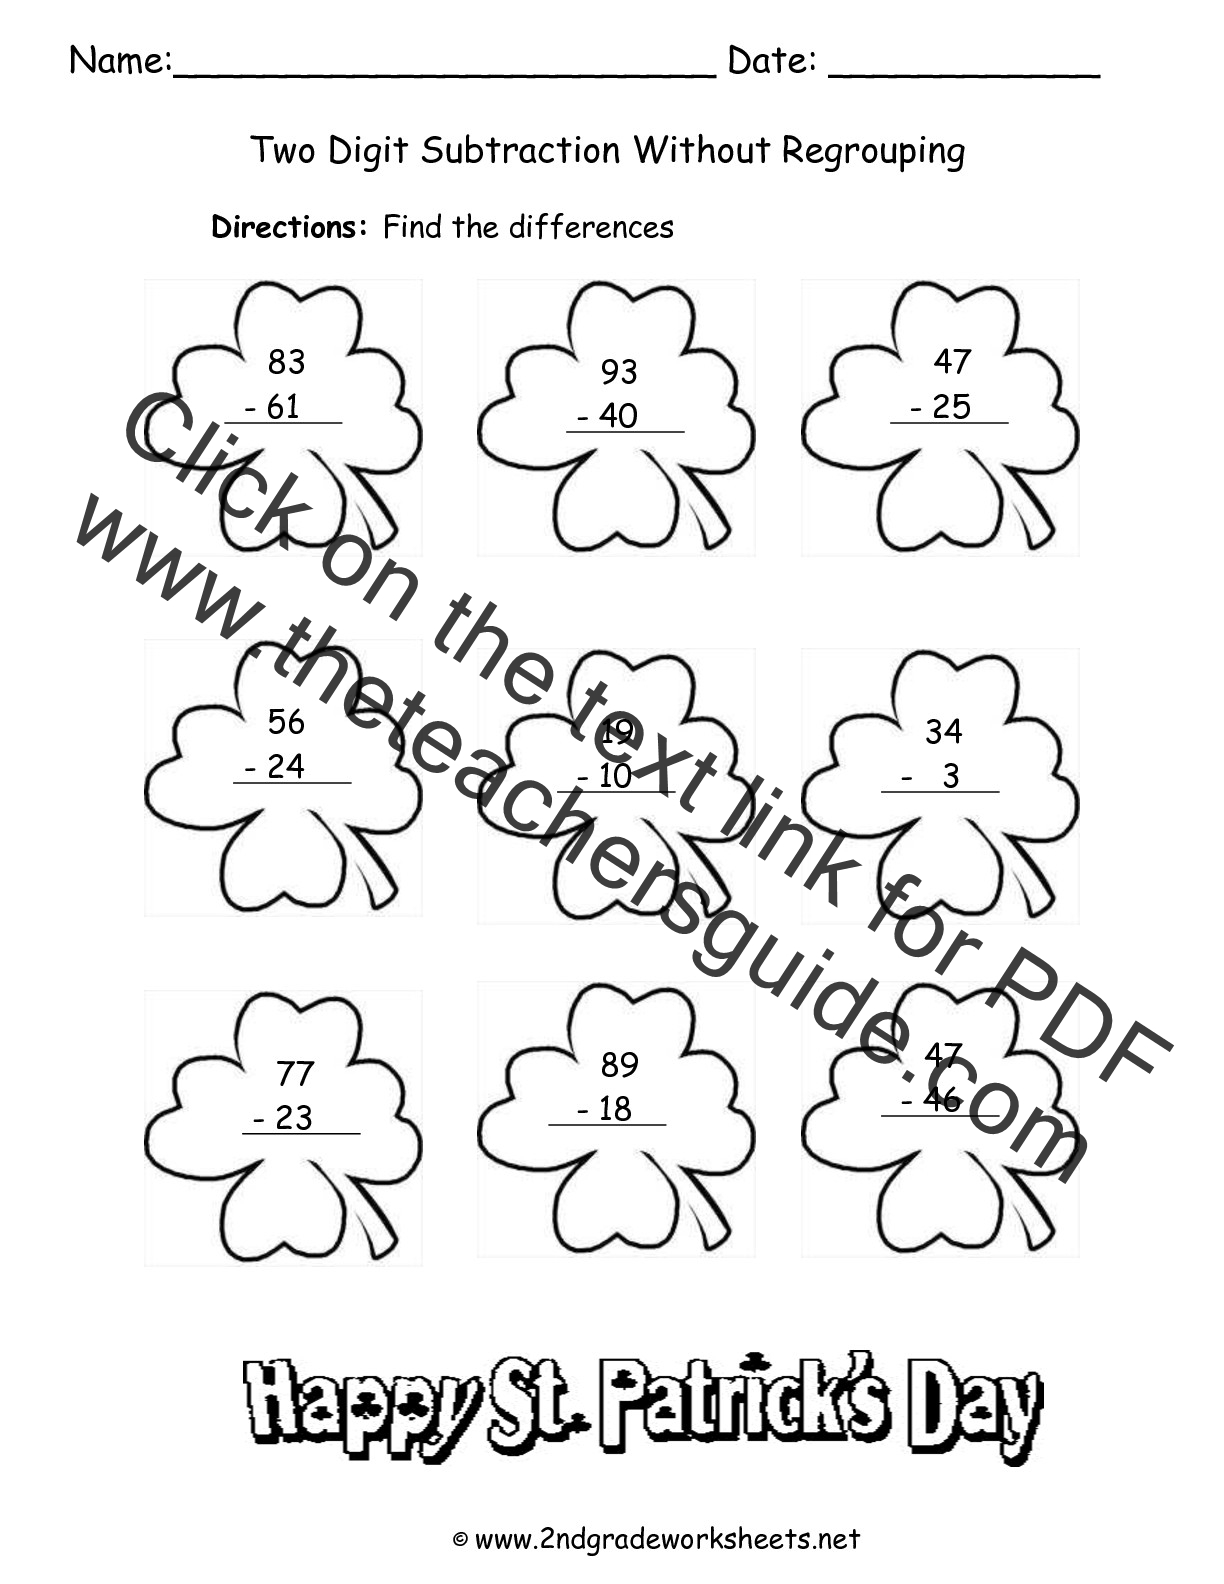 St Patricks Day Printouts and Worksheets – 2nd Grade Subtraction Regrouping Worksheets